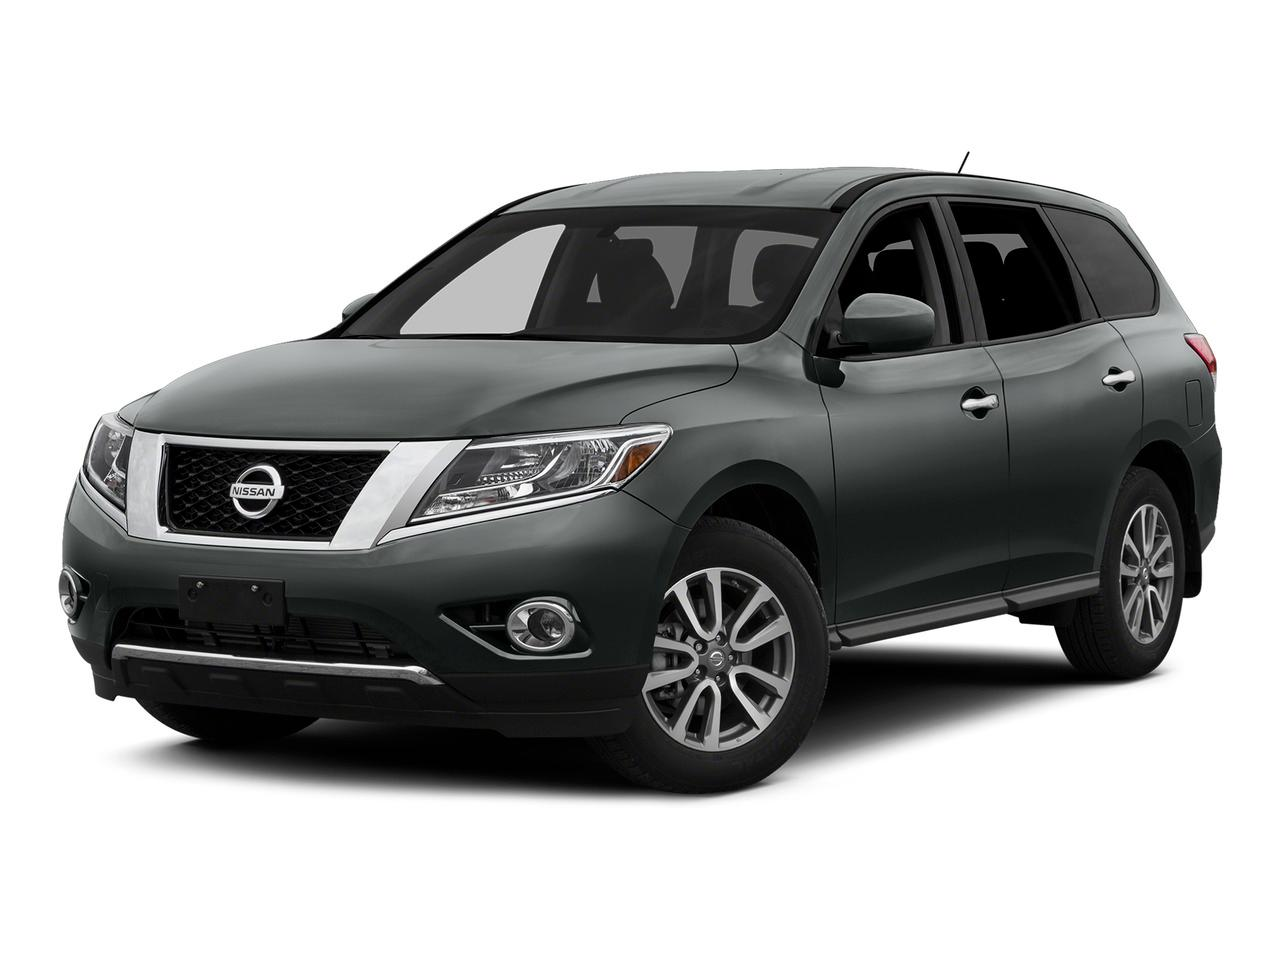 2015 Nissan Pathfinder Vehicle Photo in Corpus Christi, TX 78410-4506